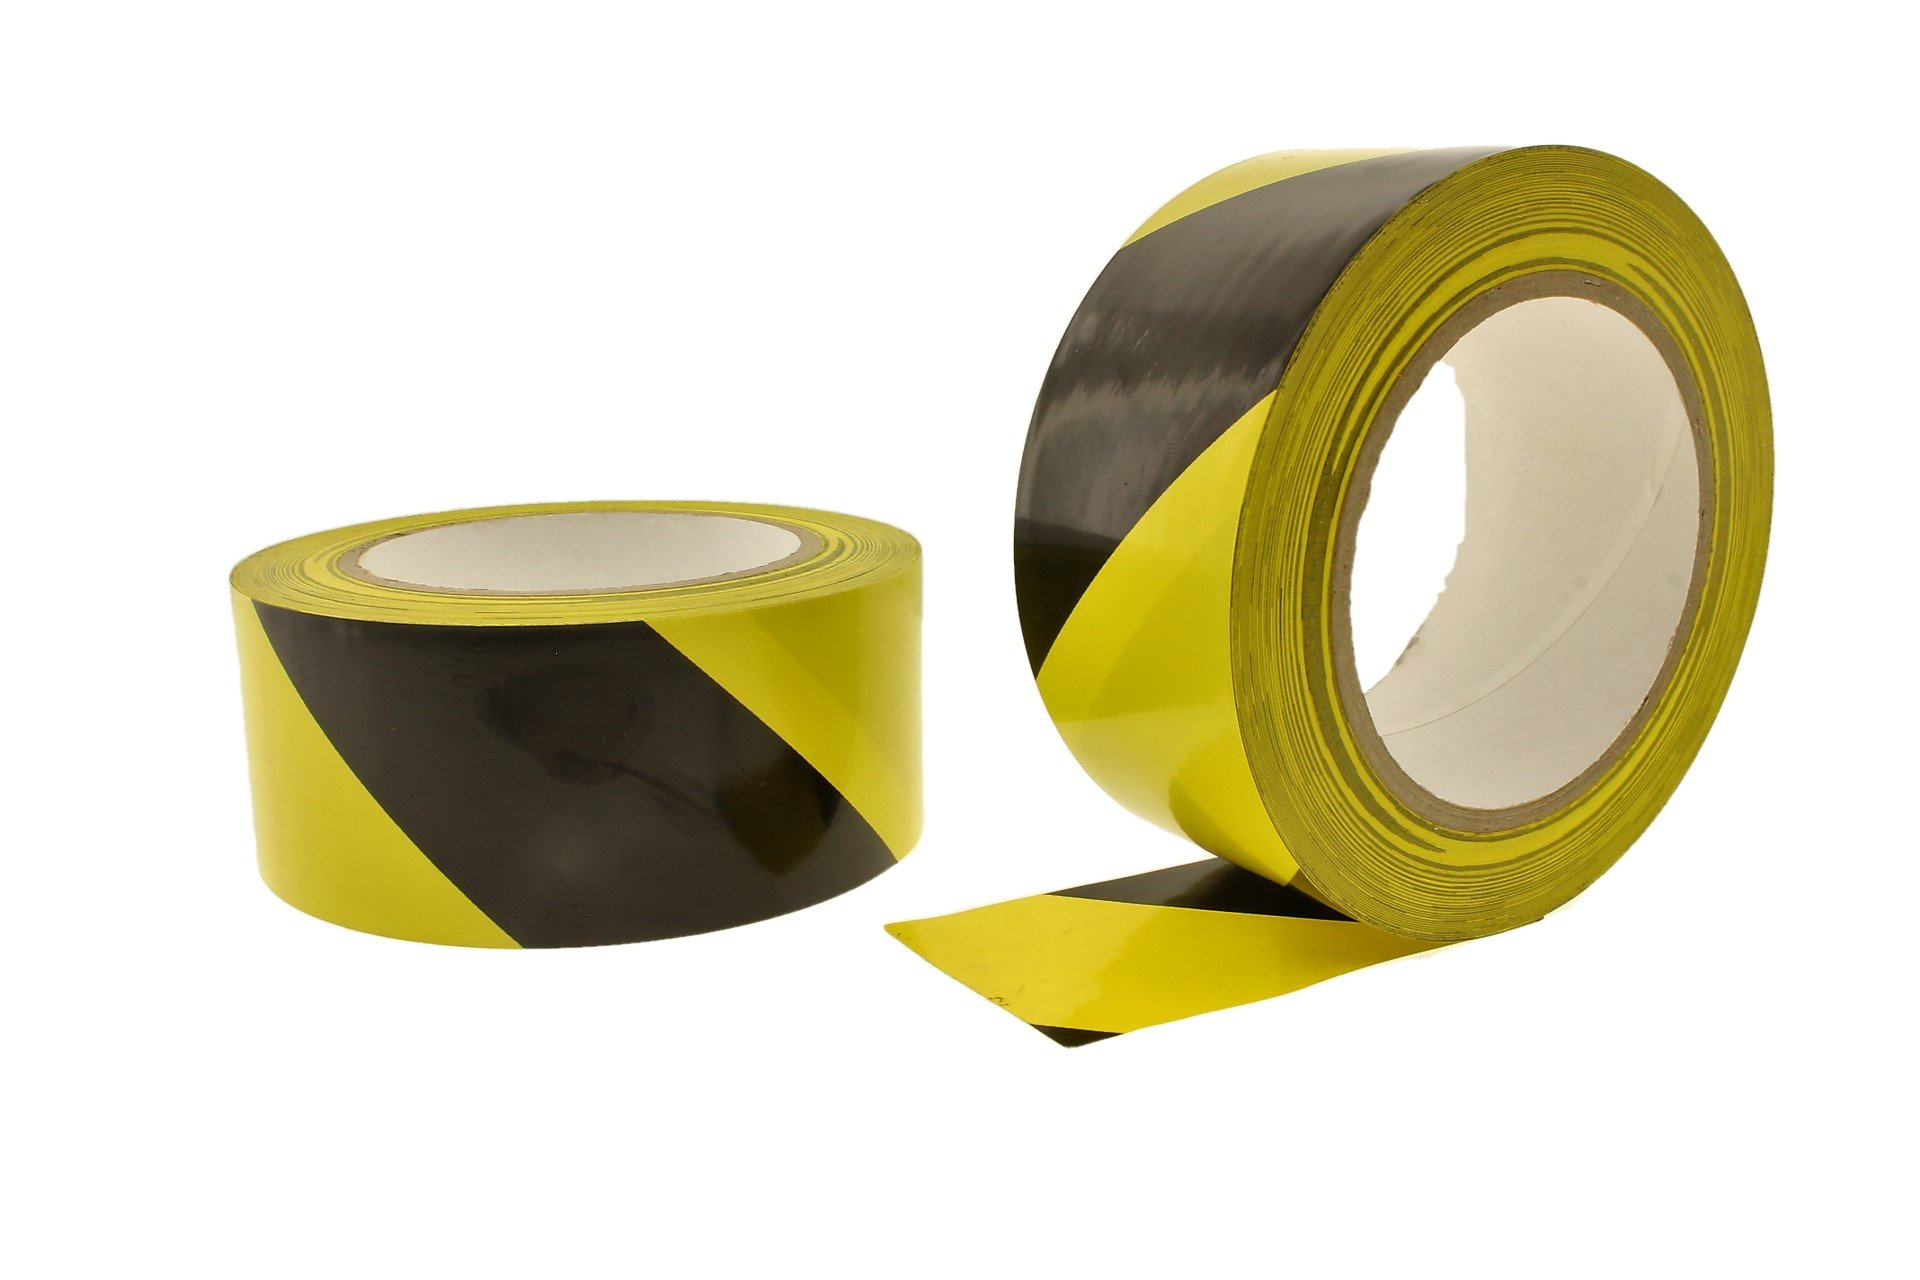 2pk 2'' Black Yellow OVER LAMINATED Durable Rubber Adhesive PVC Vinyl Sealing Coding Warning OSHA Caution Marking Safety Electrical Removable Floor Tape (1.88IN 48MM) 36 yard 9 mil